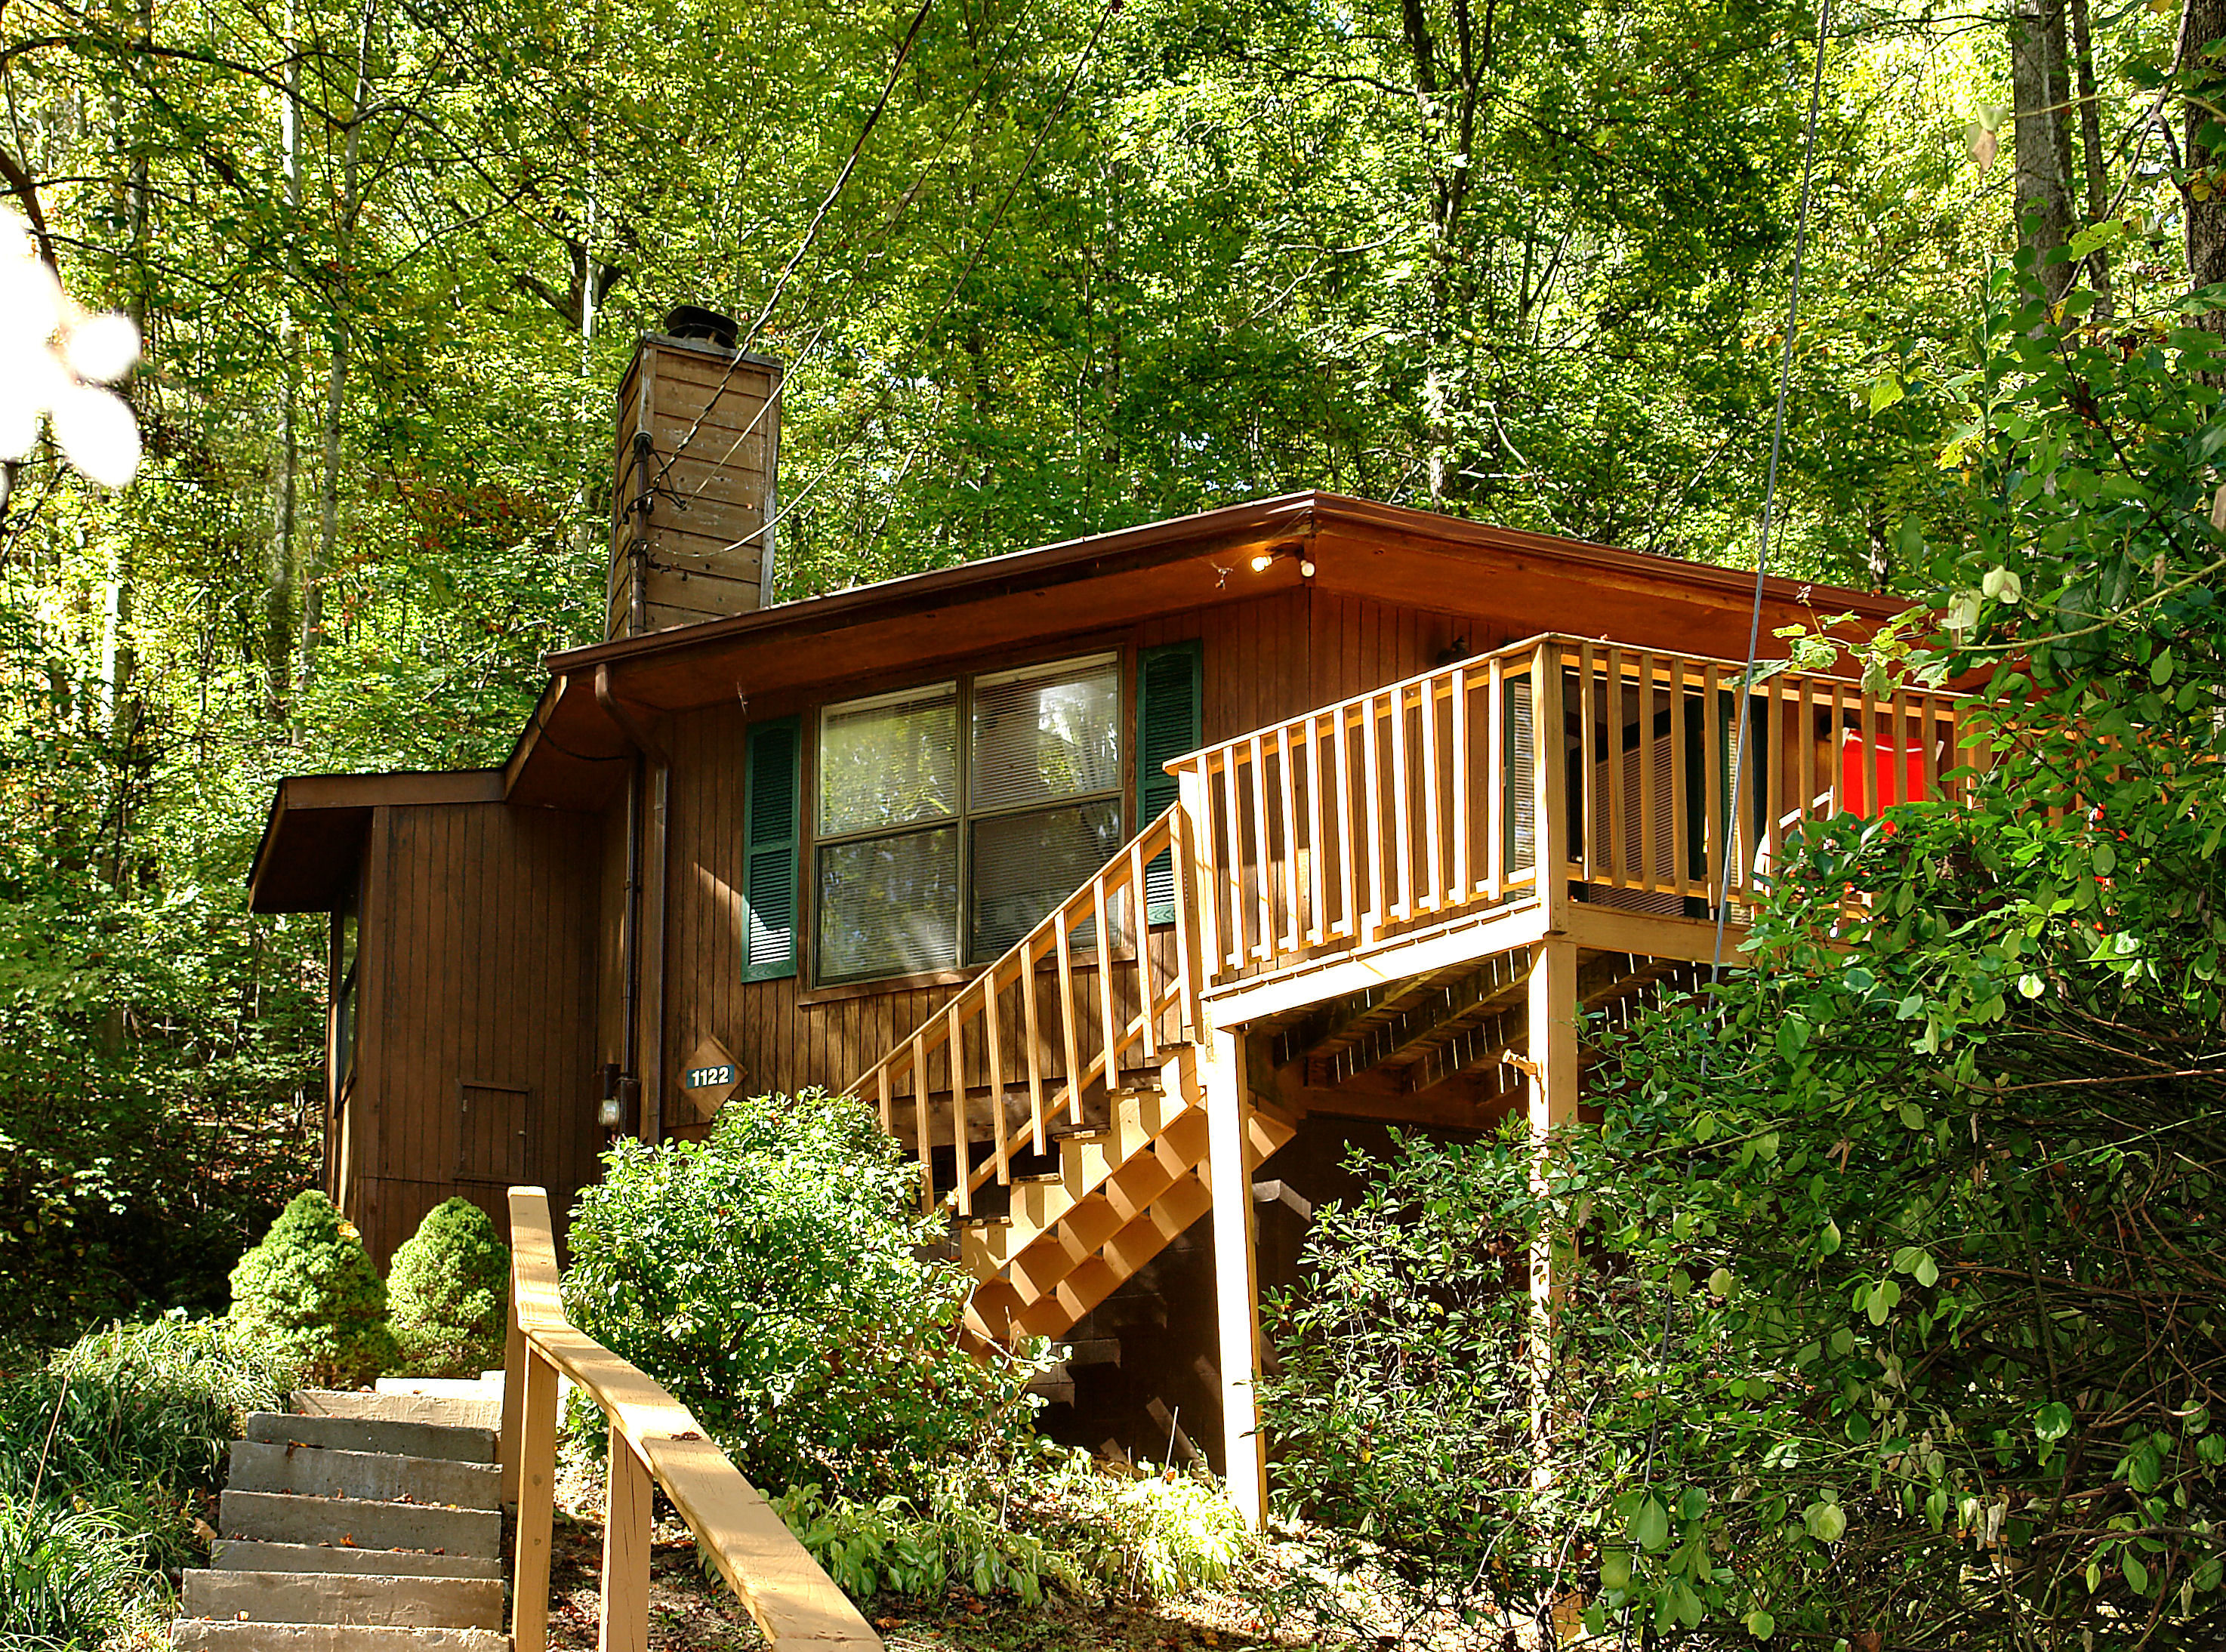 trish mountain list minute forge s rentals and rental tennessee smoky on gatlinburg cabin deals cabins specials pigeon last